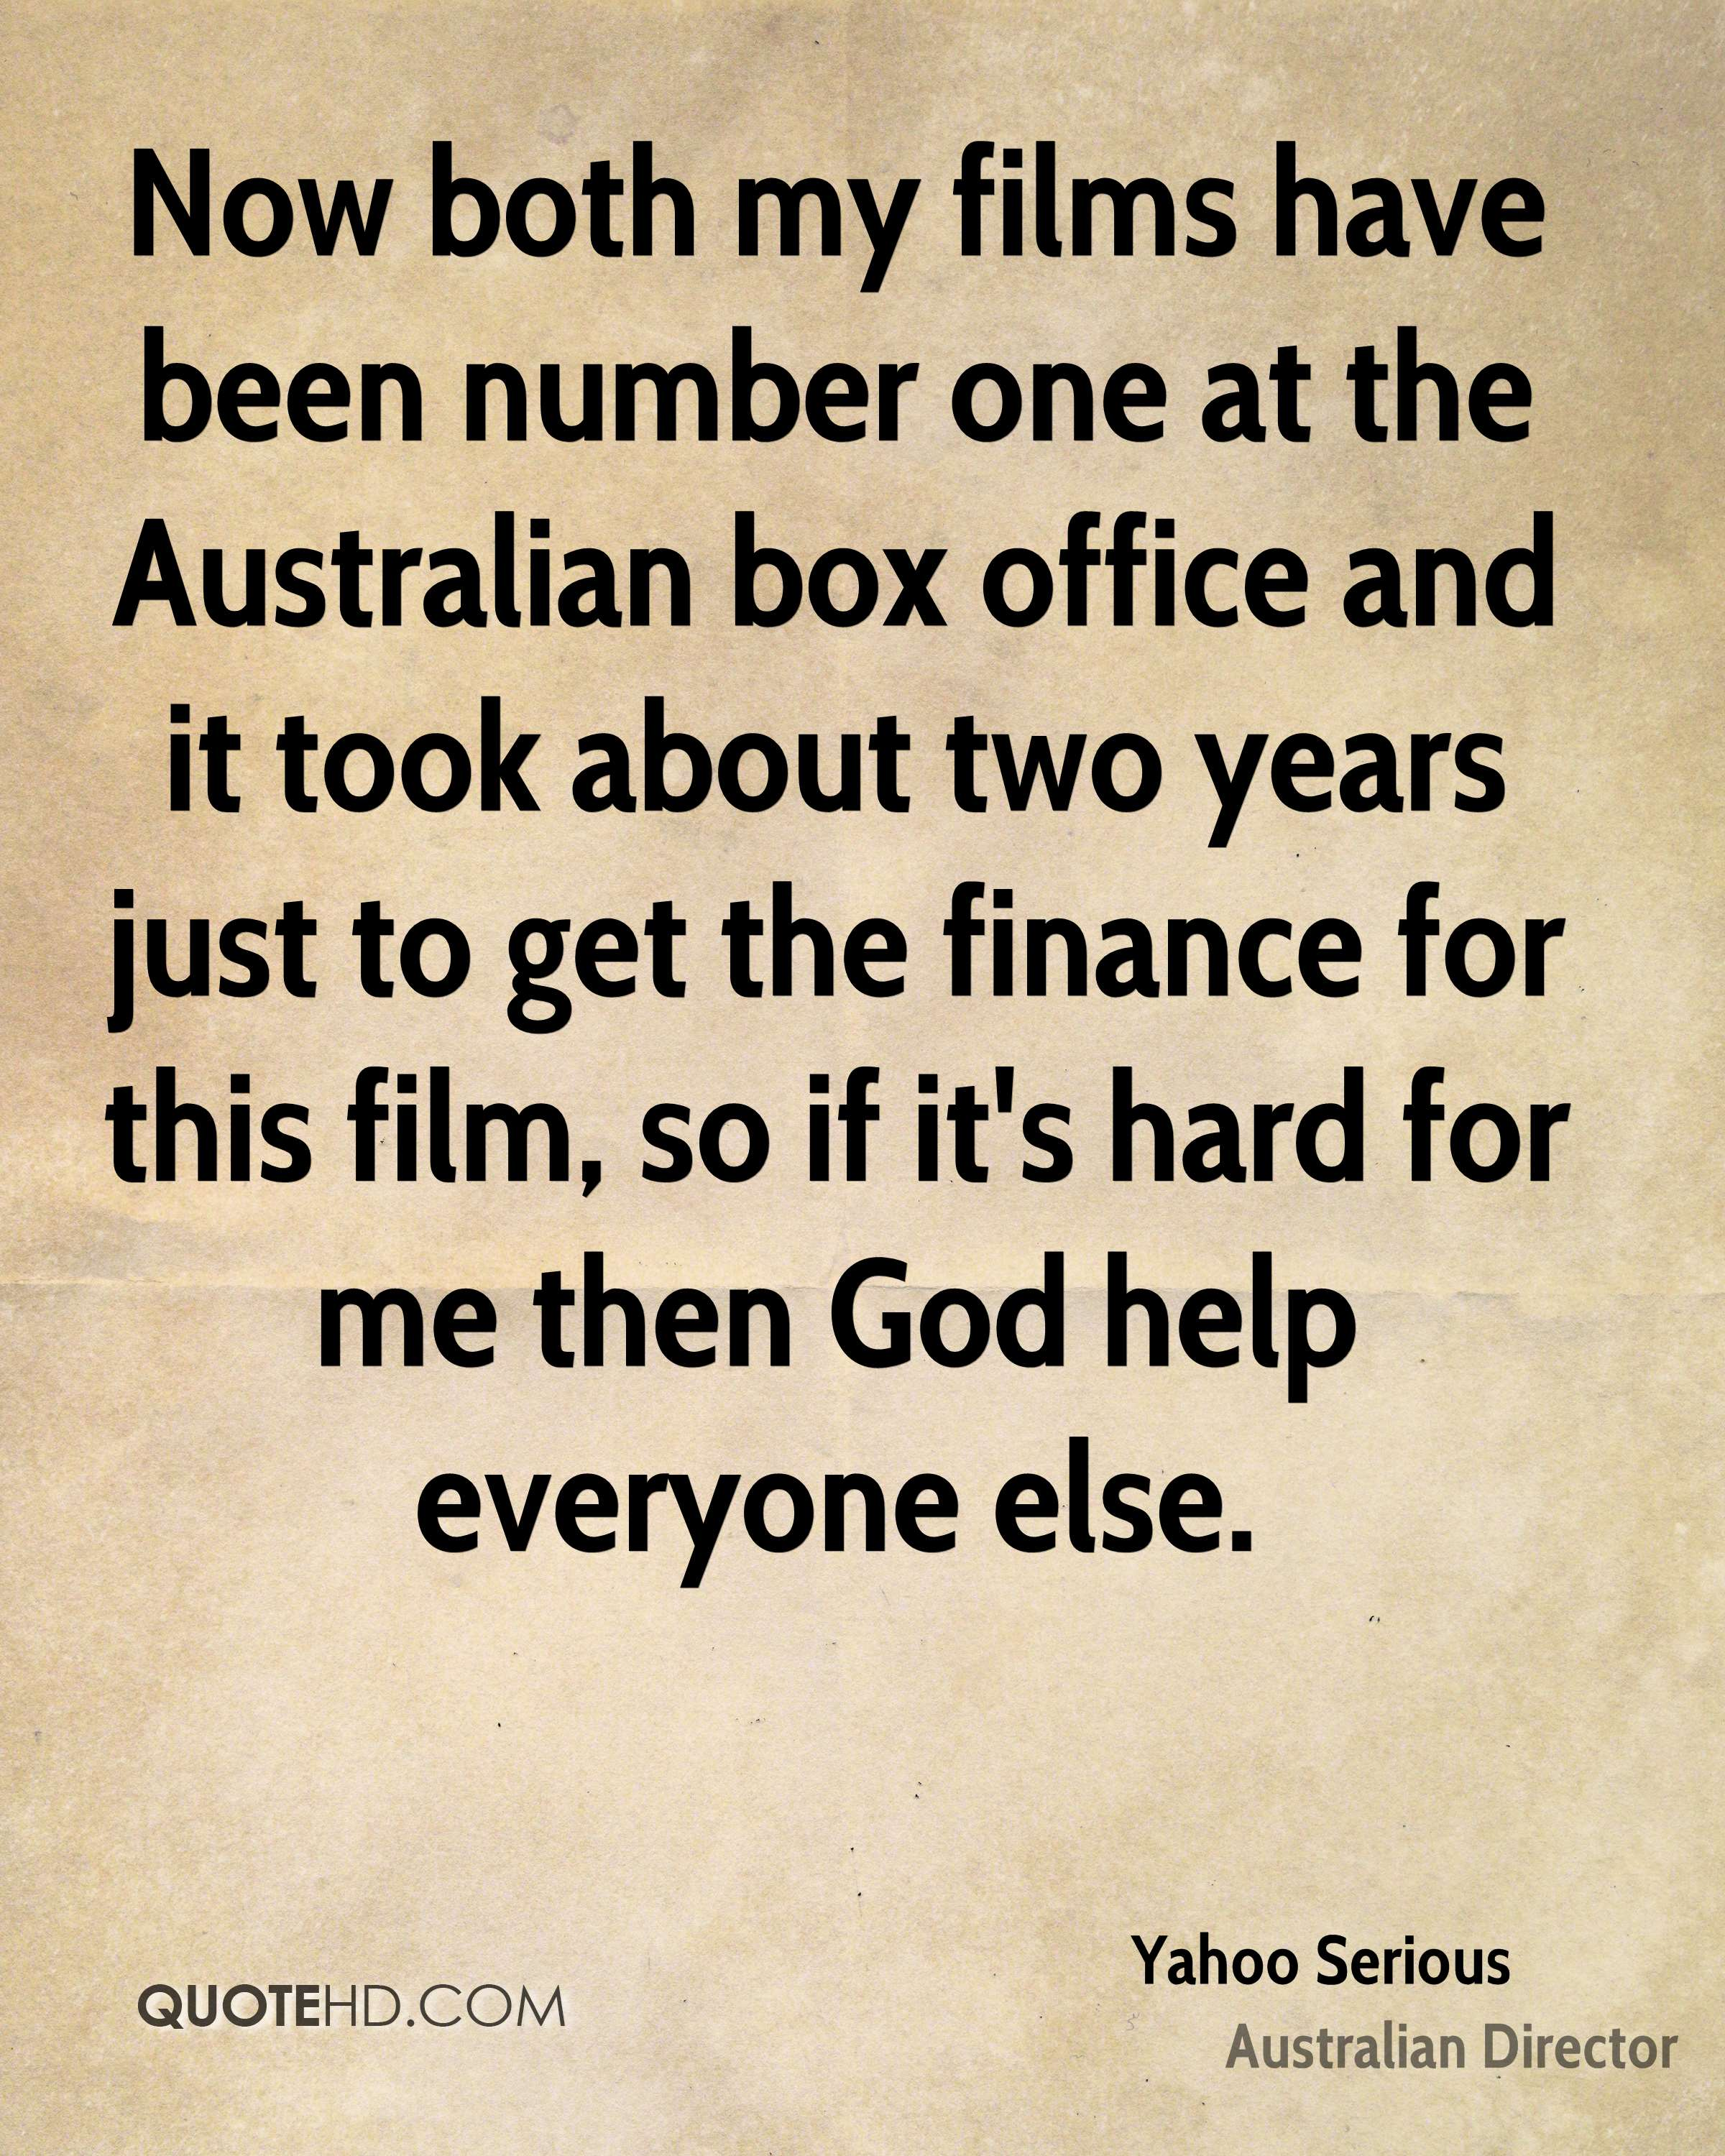 Now both my films have been number one at the Australian box office and it took about two years just to get the finance for this film, so if it's hard for me then God help everyone else.